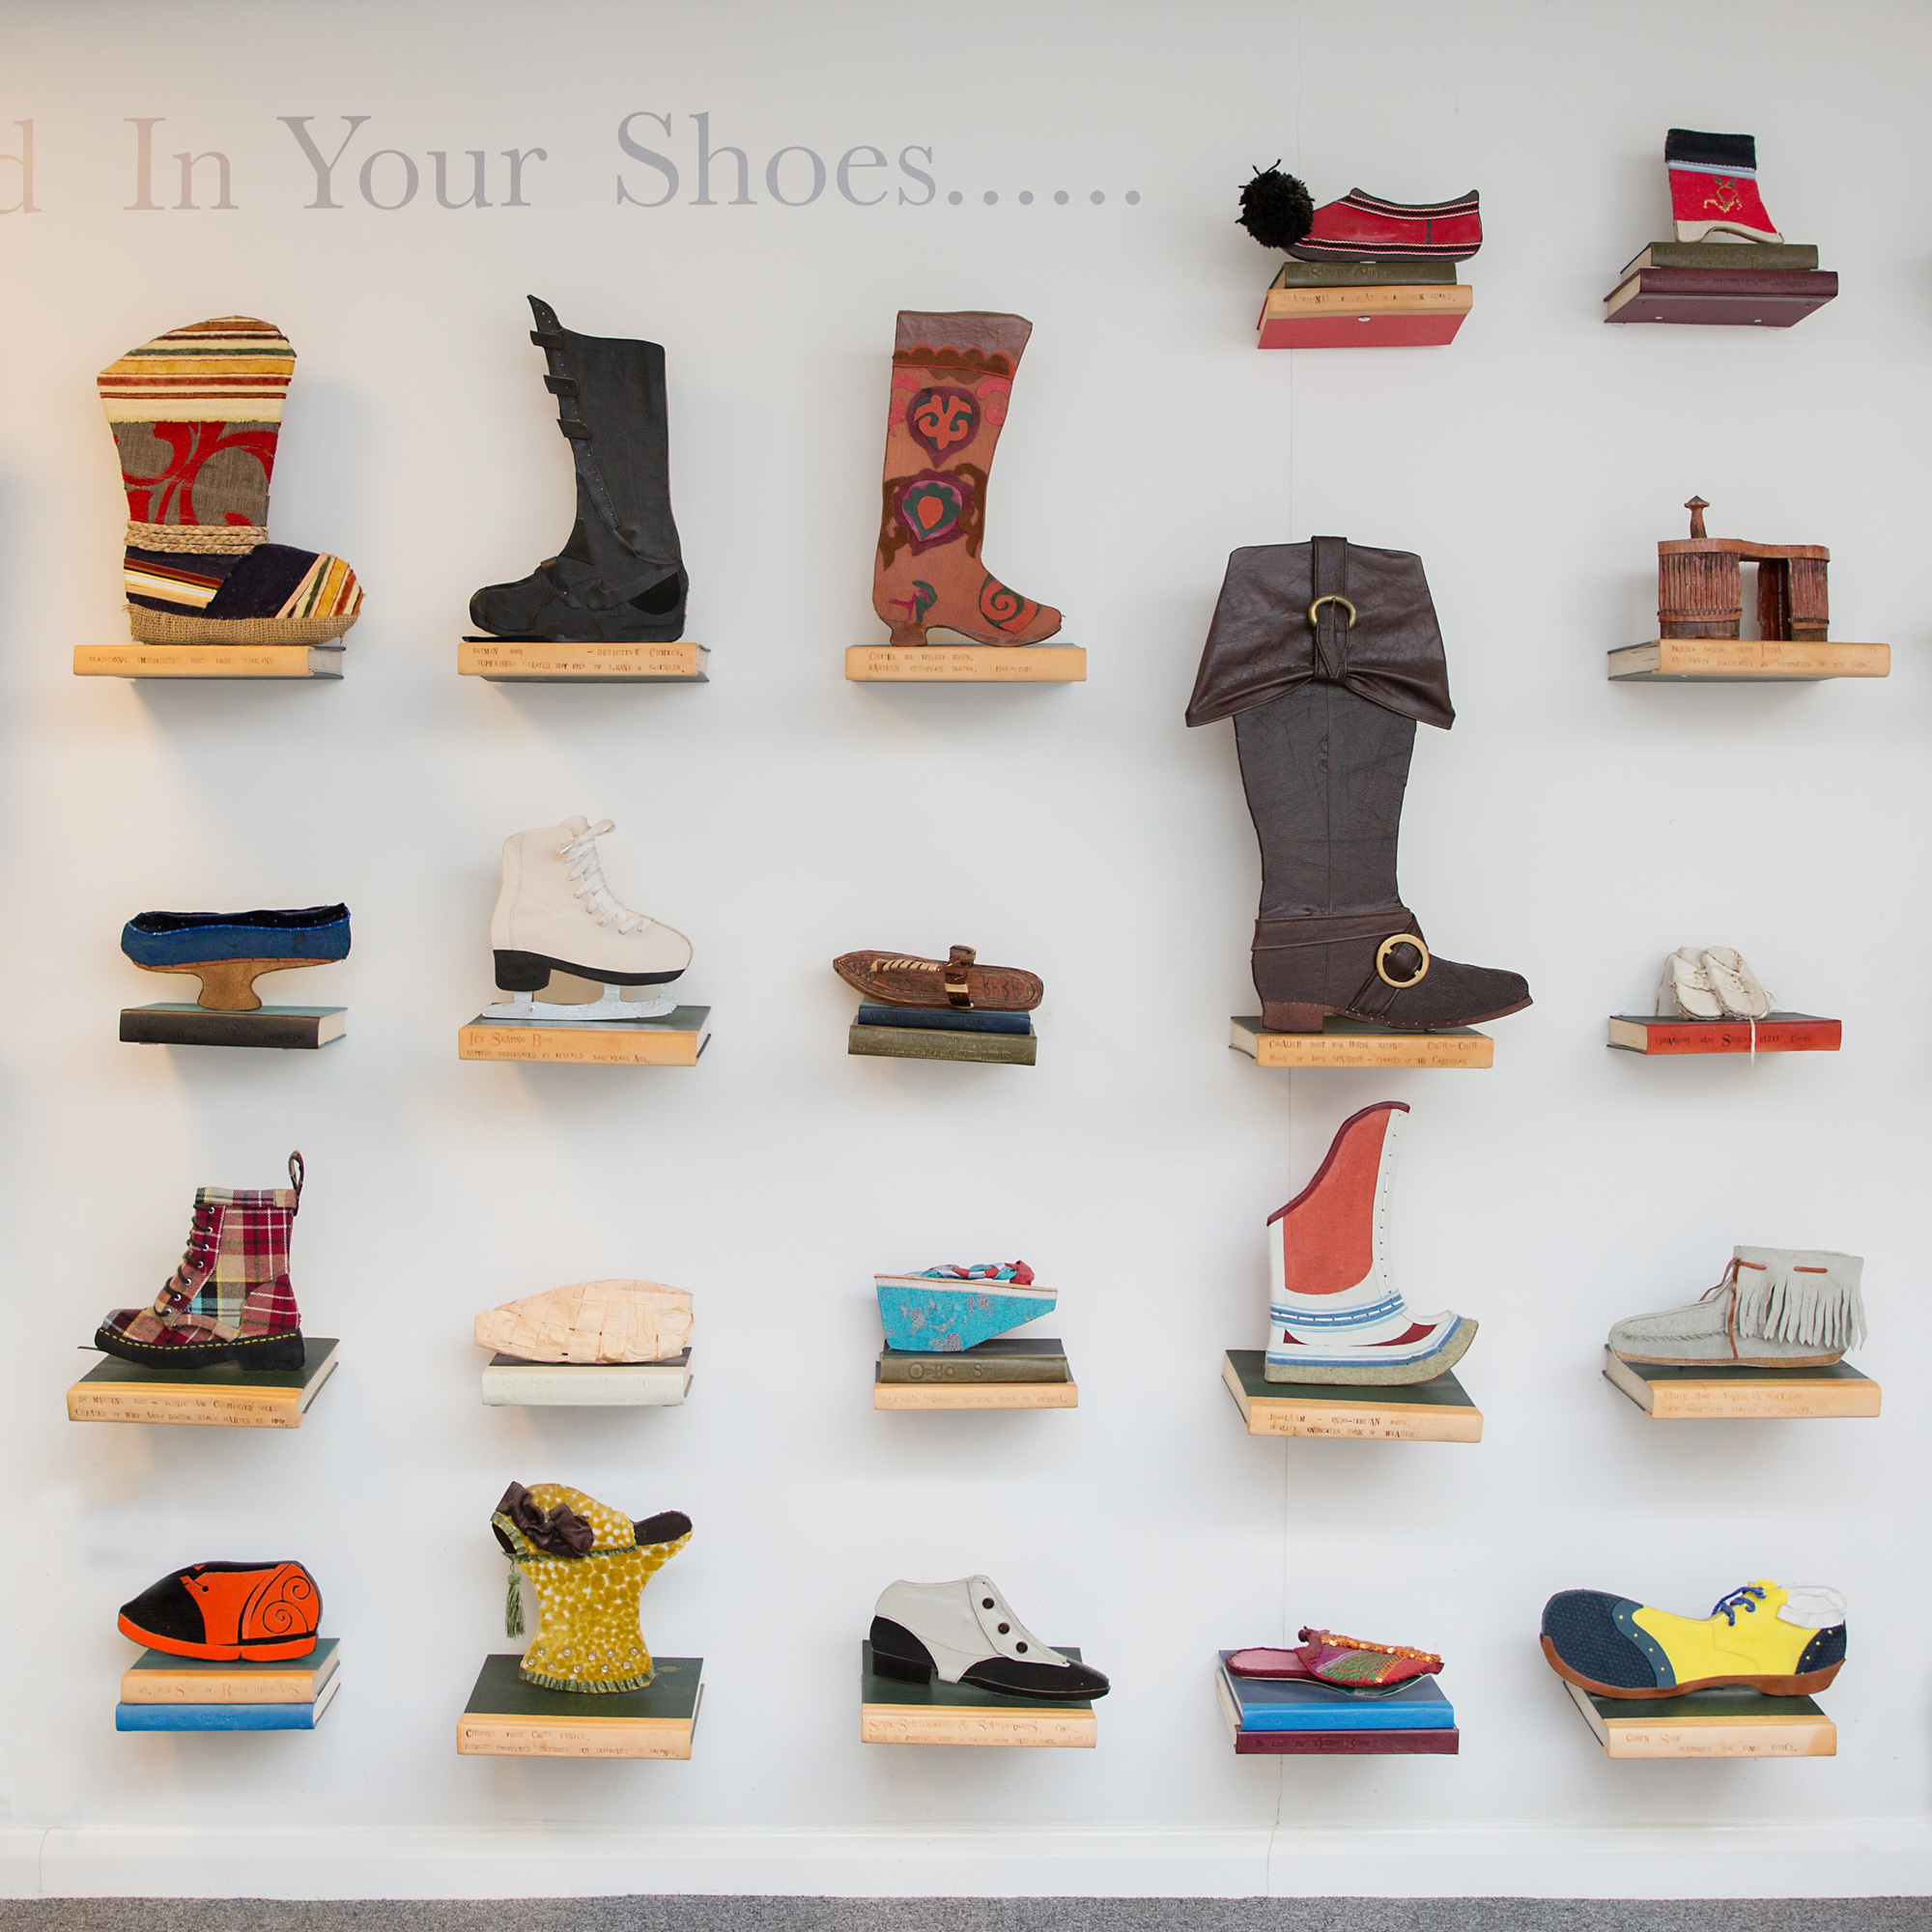 Artistic shoe display